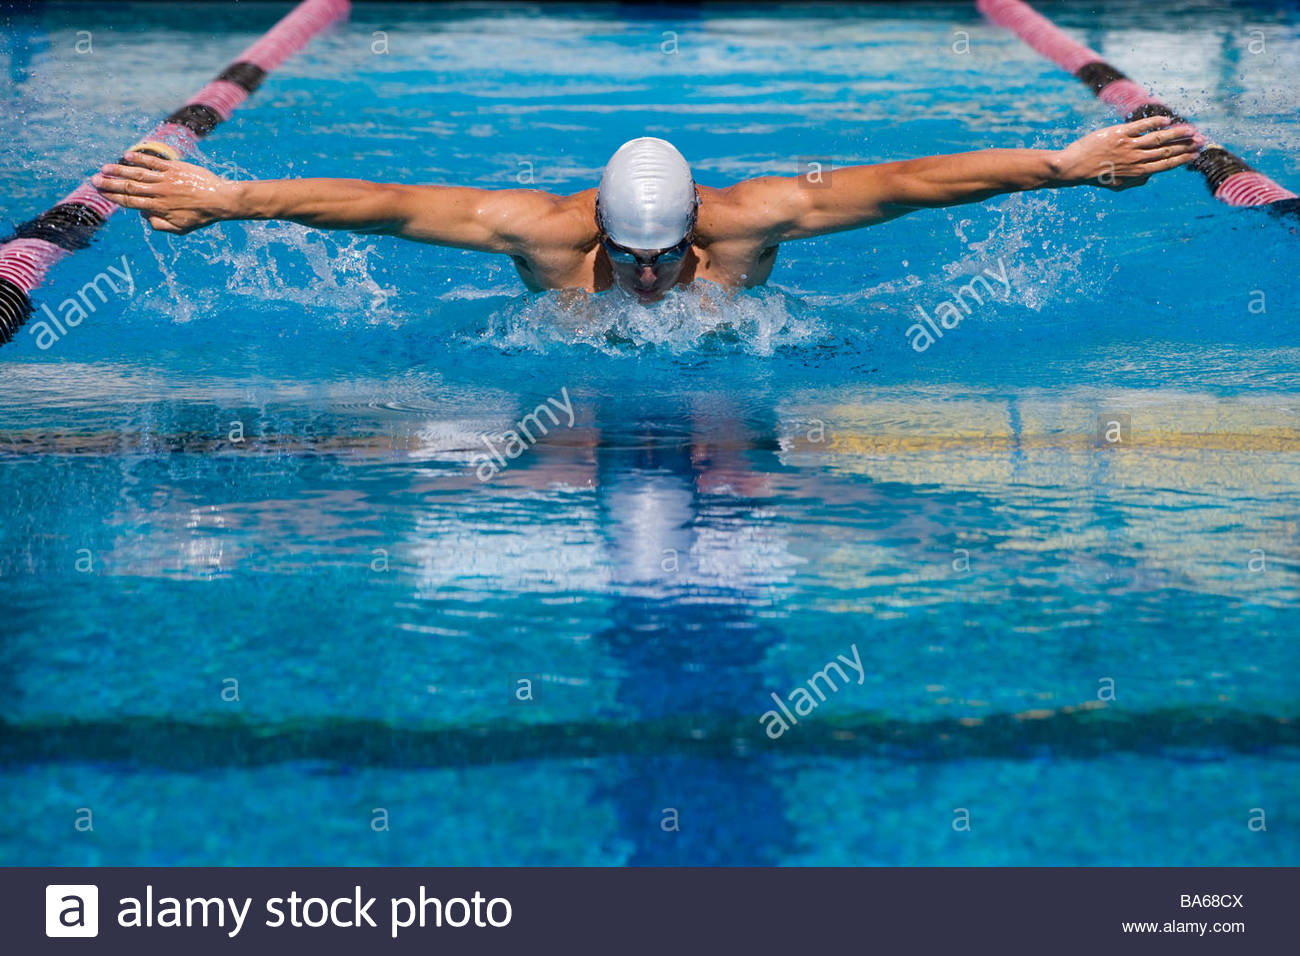 Swimming Lane Stock Photos Amp Swimming Lane Stock Images